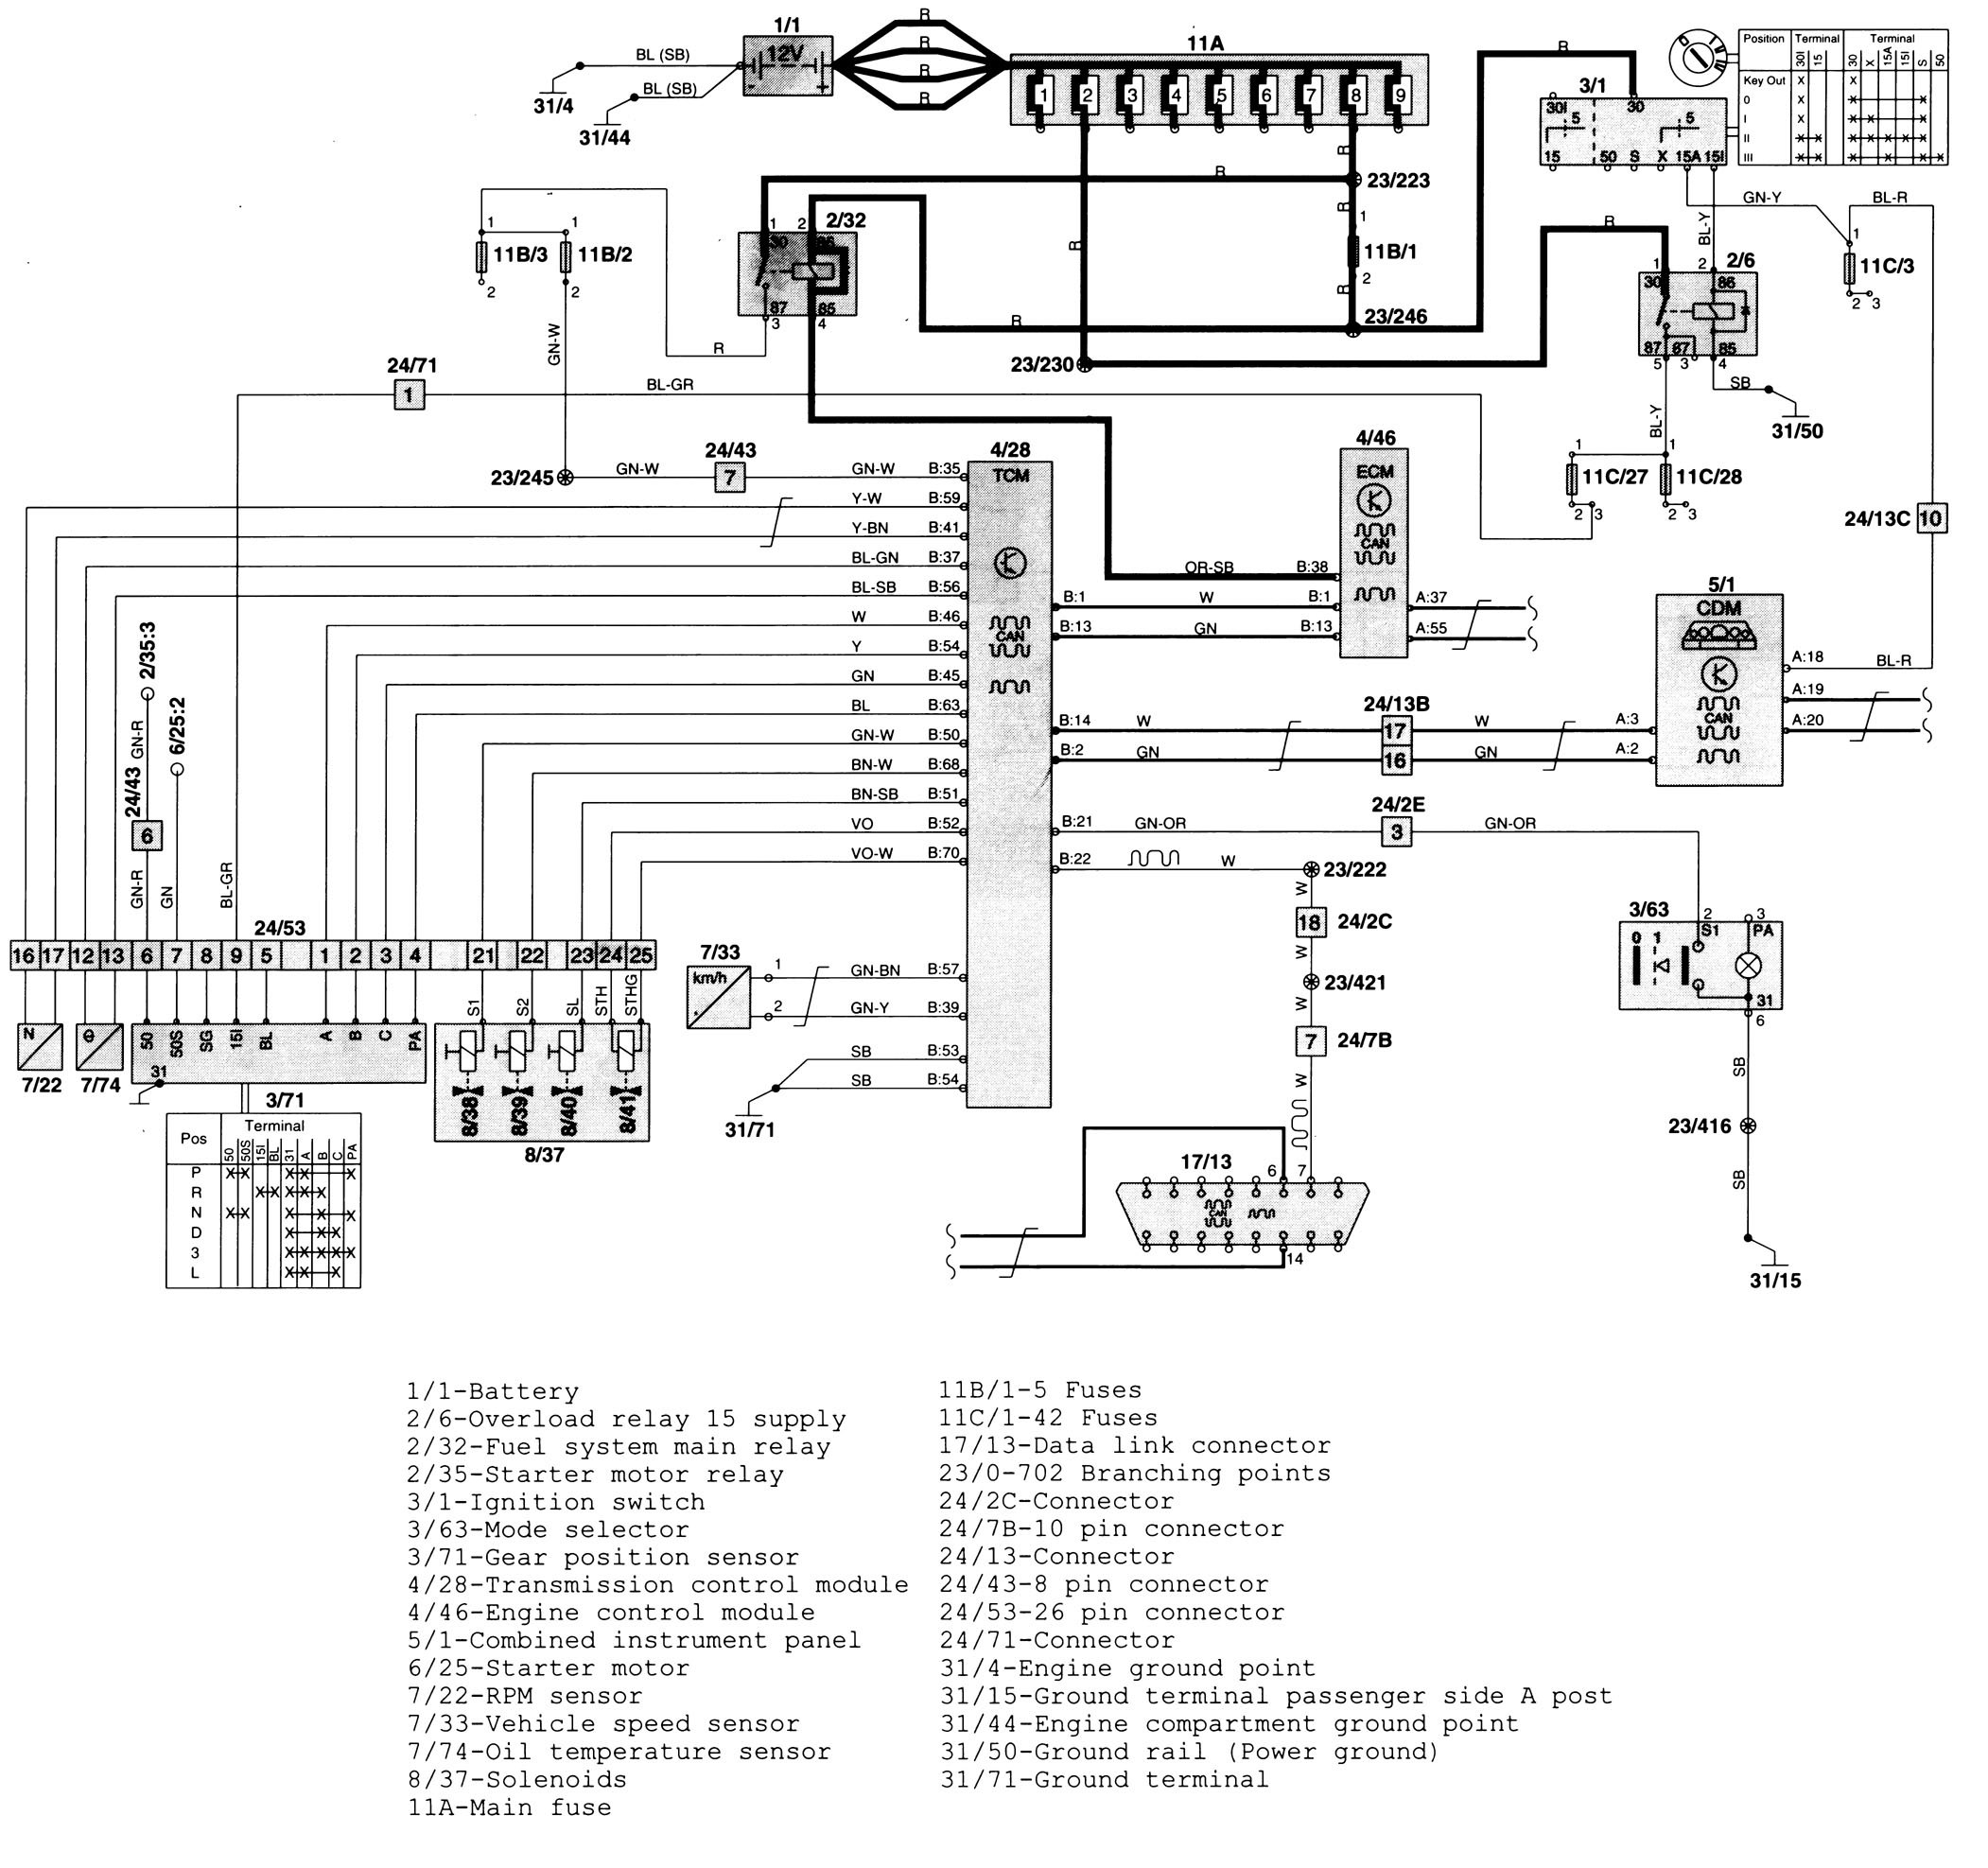 volvo c70 wiring diagram transmission controls 1999 volvo c70 (1999) wiring diagrams transmission controls 1999 volvo v70 seat heater wiring diagram at webbmarketing.co